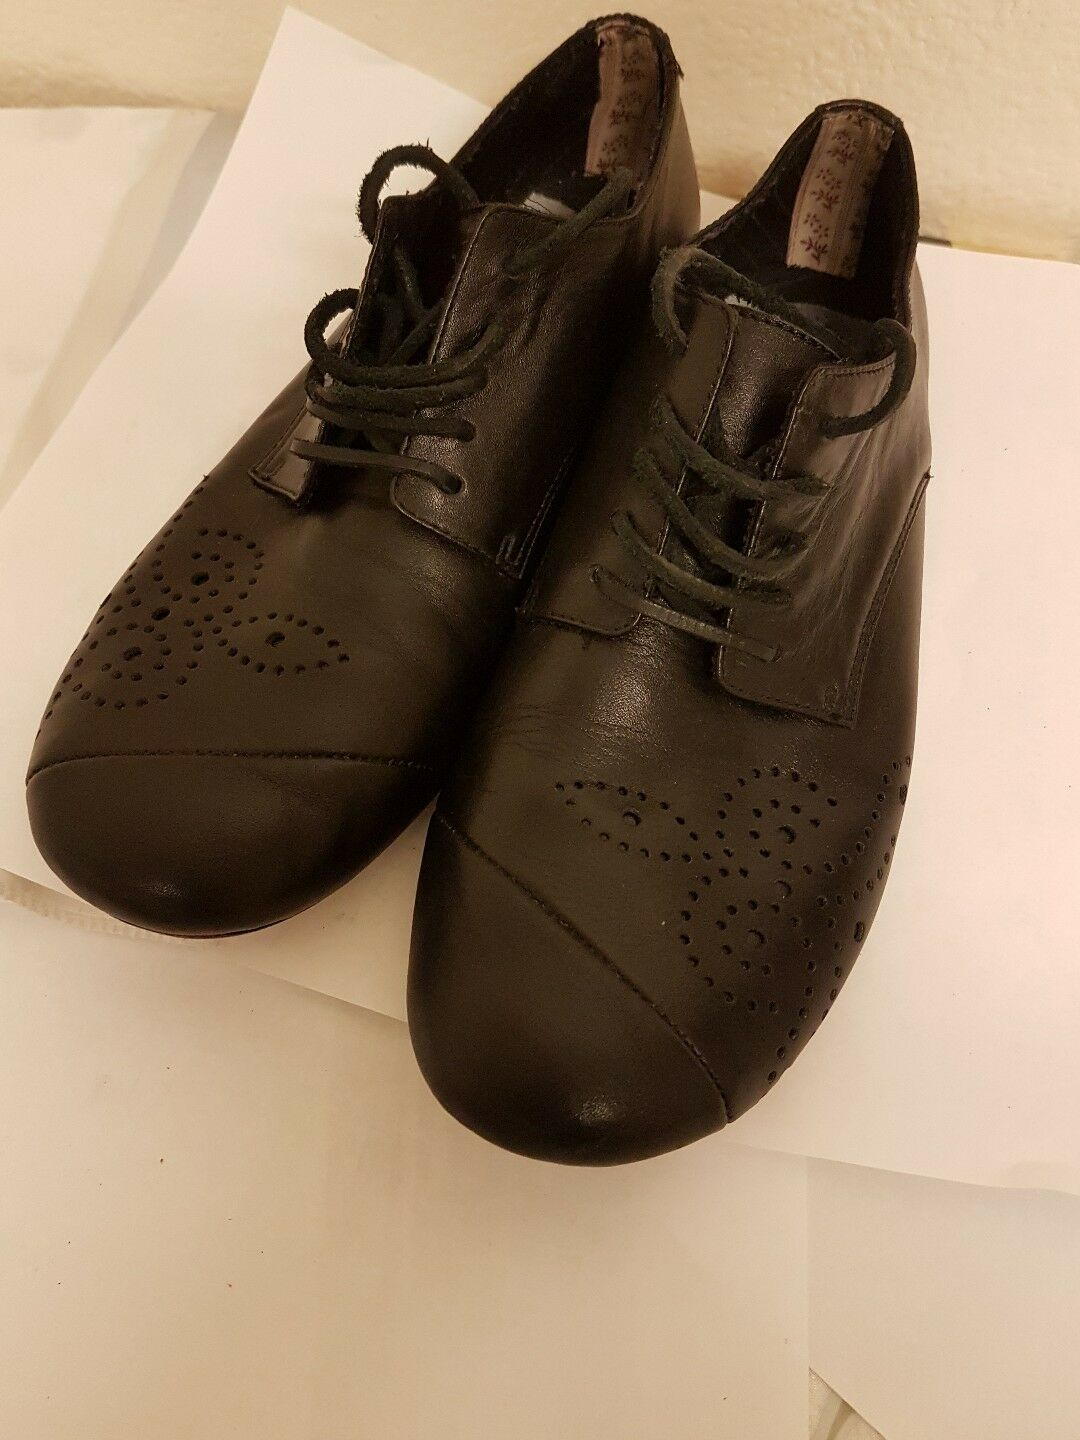 Mens irregular choice Leather Leather Leather  shoes  uk size 8 b40a6b